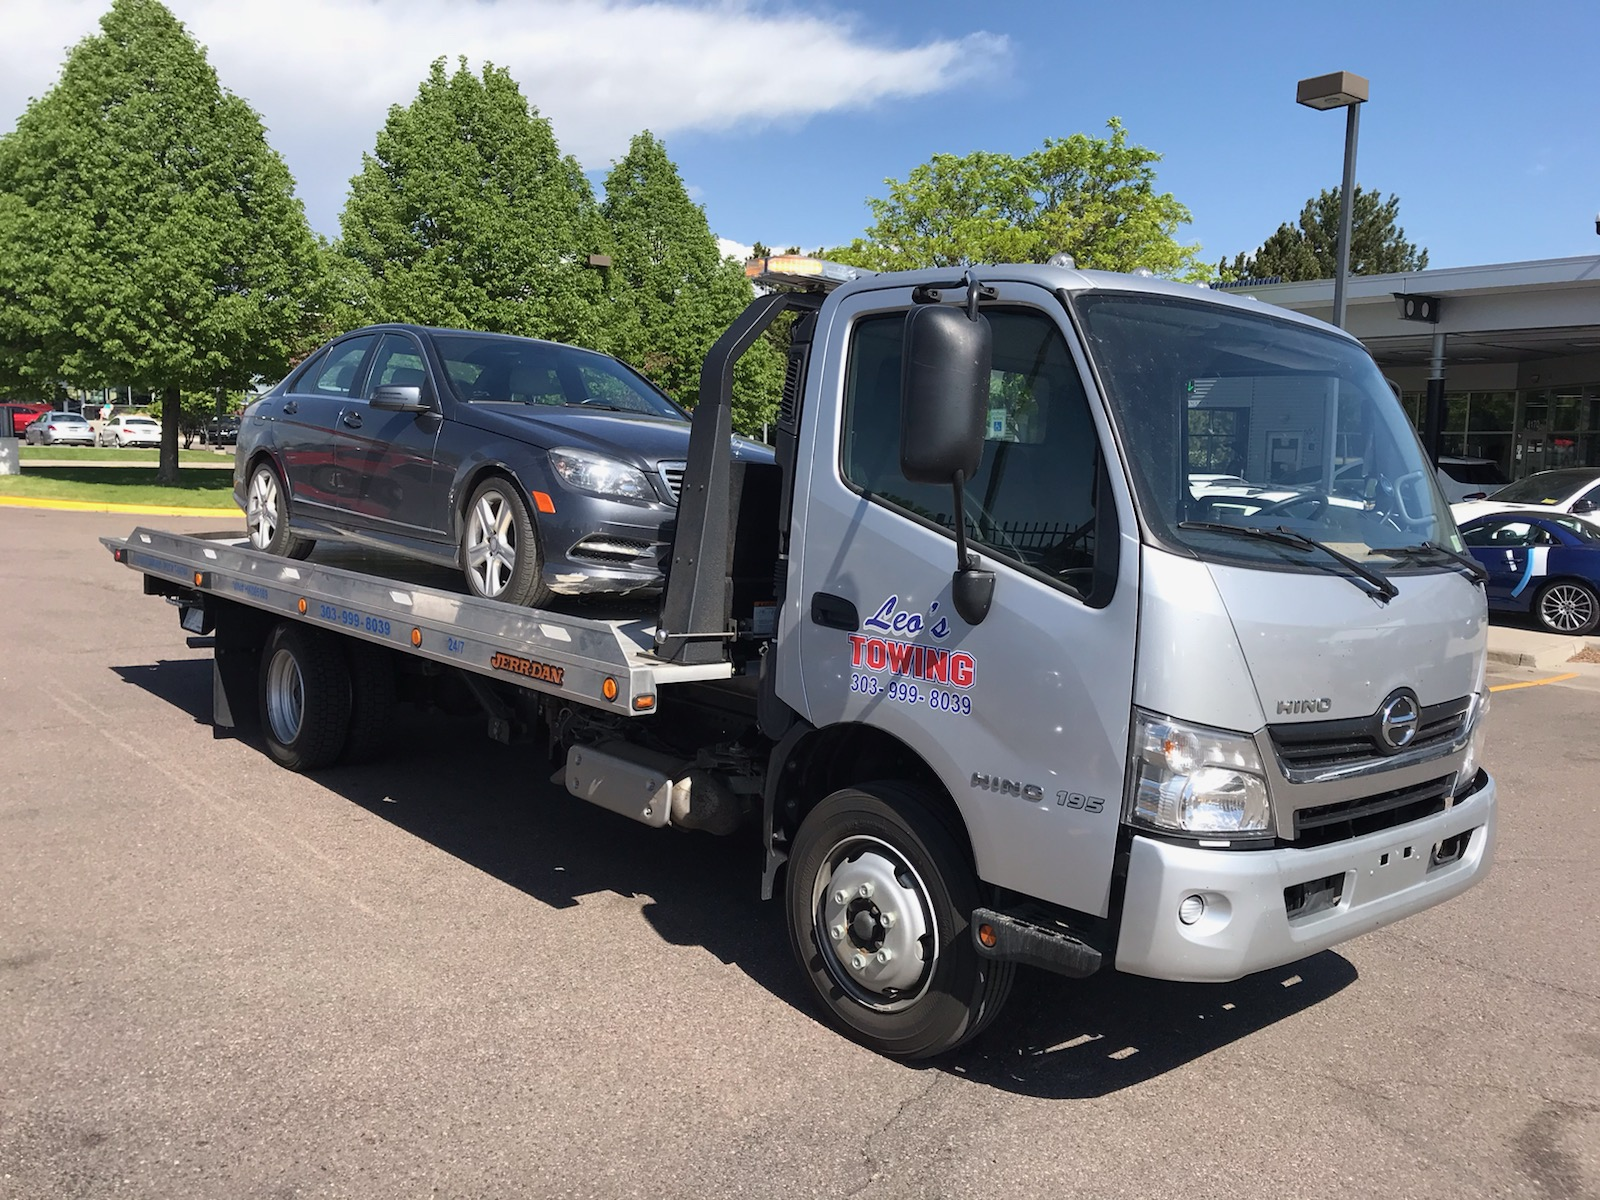 Leo's Towing 12 27 18 (3)